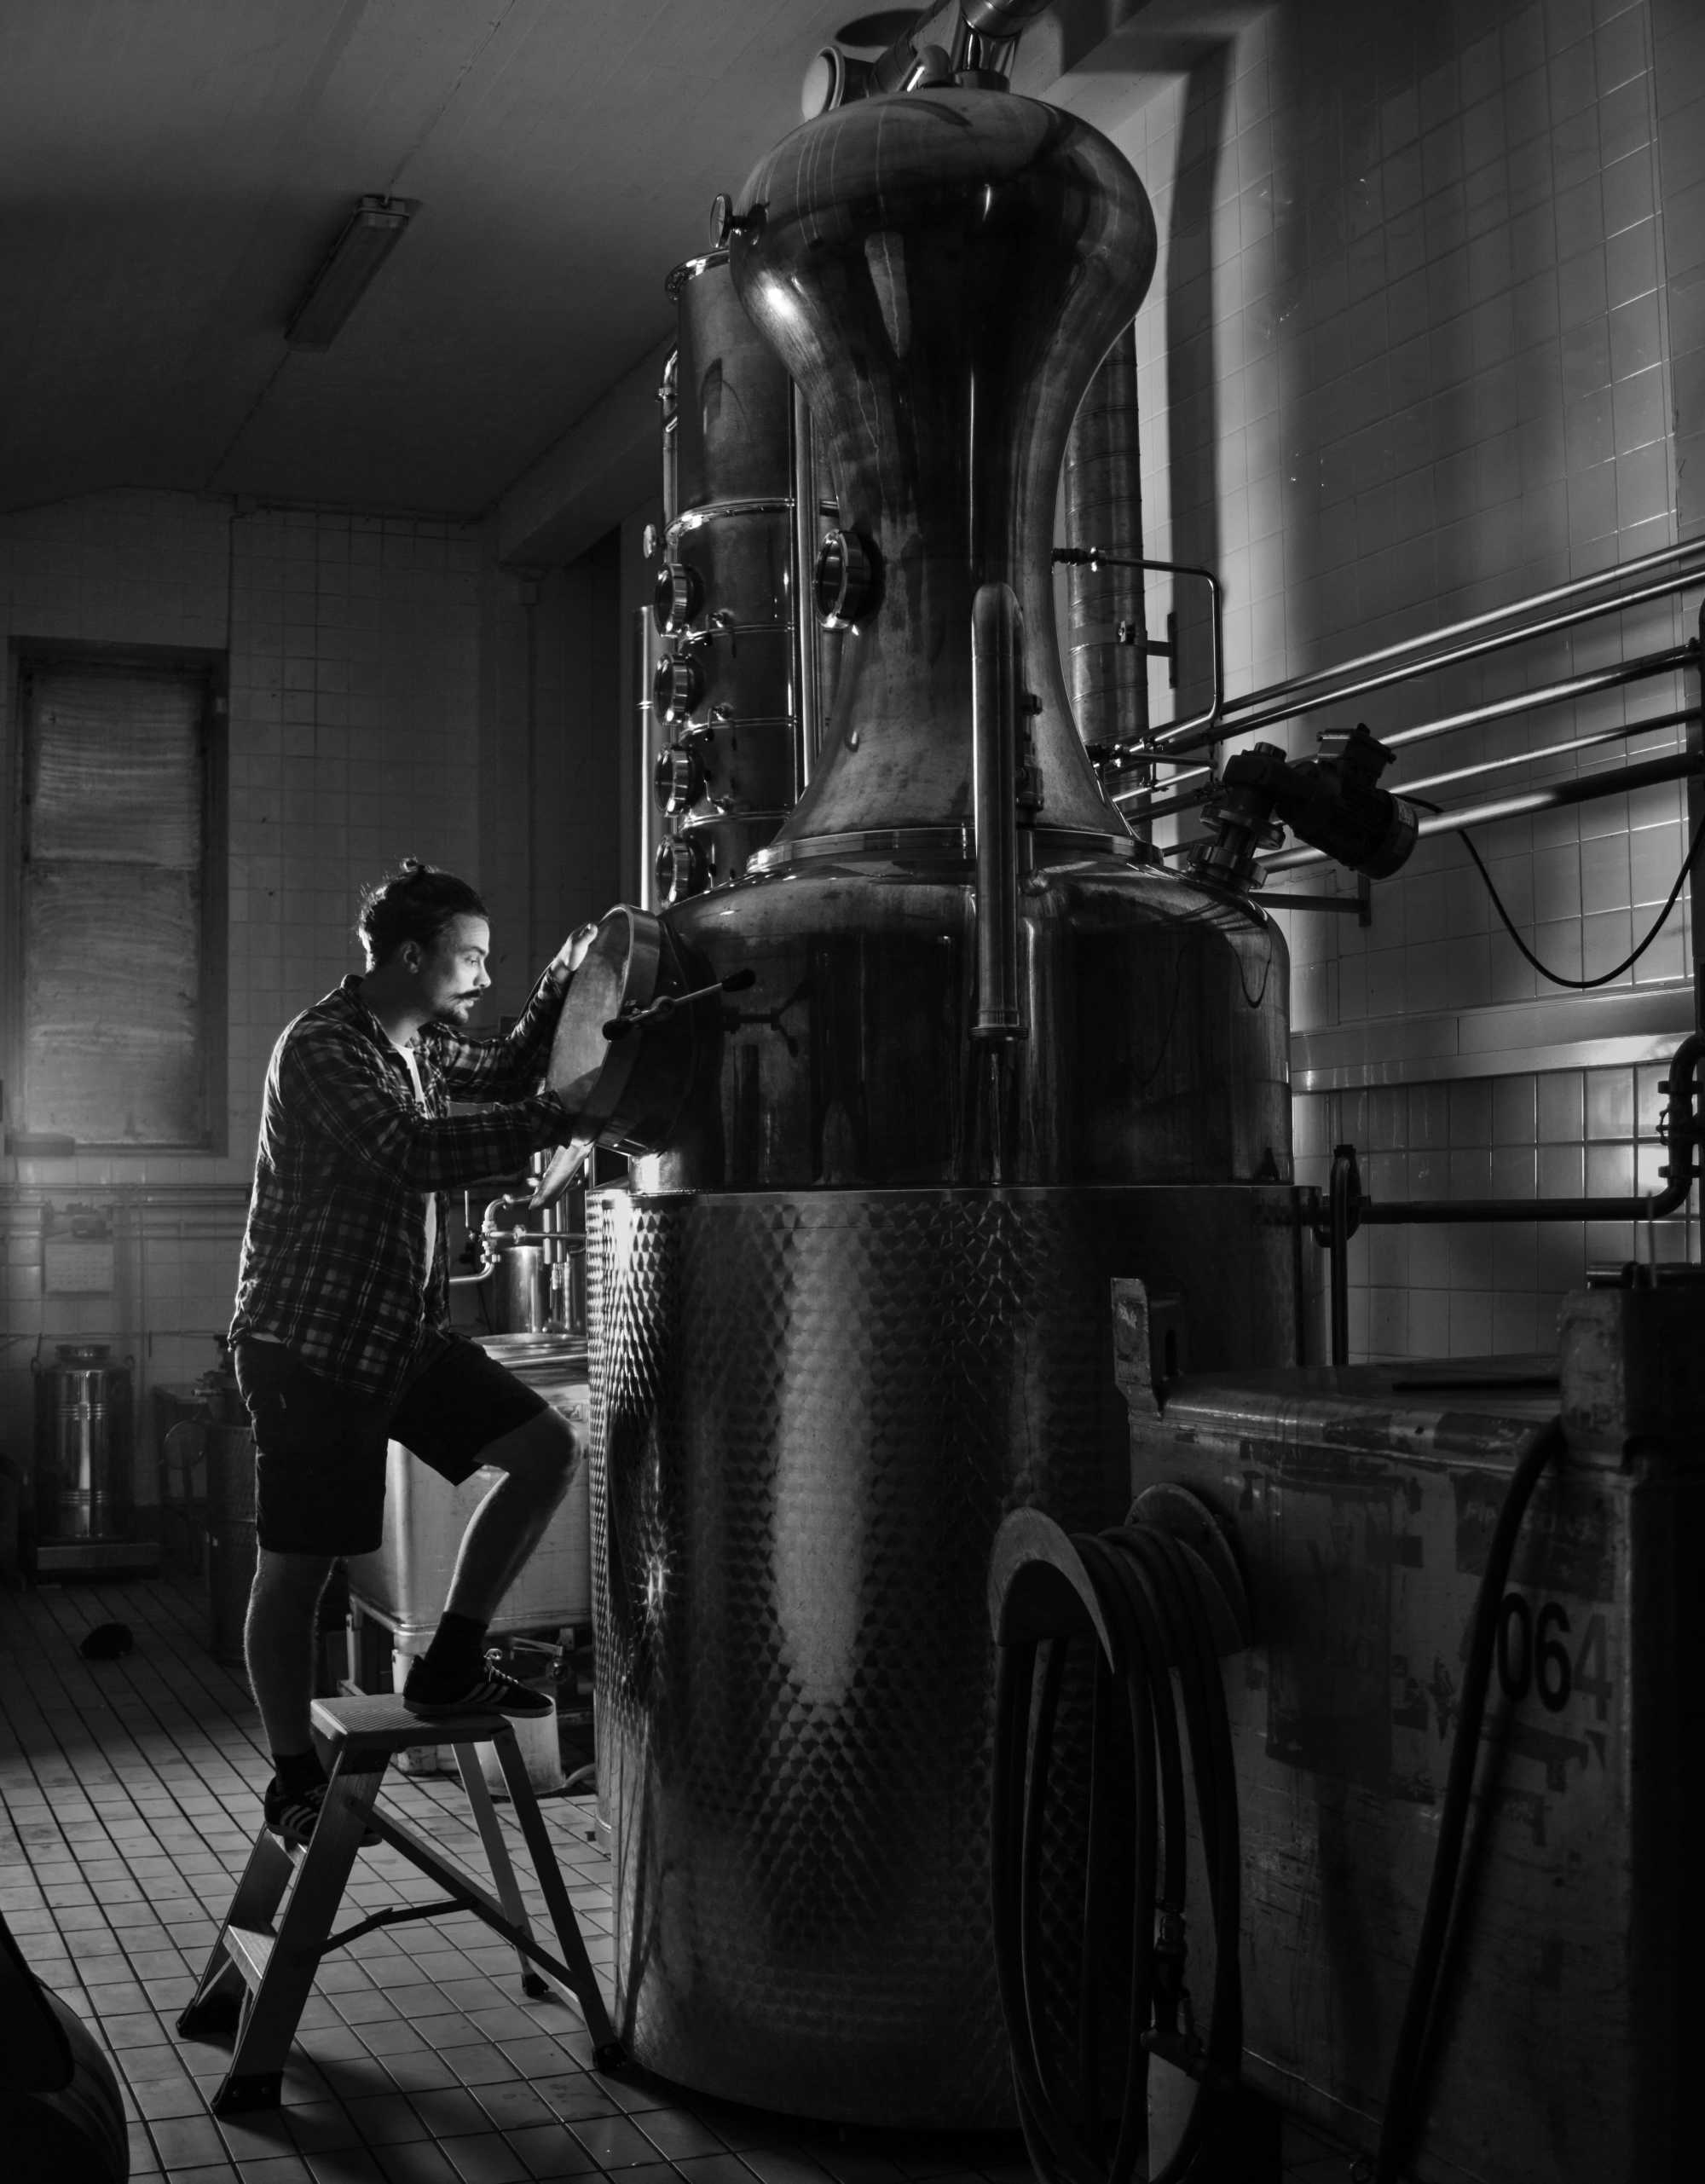 Black and white image of head distiller Kalle Vallkonnen standing on a ladder, peering into a distilling pot.